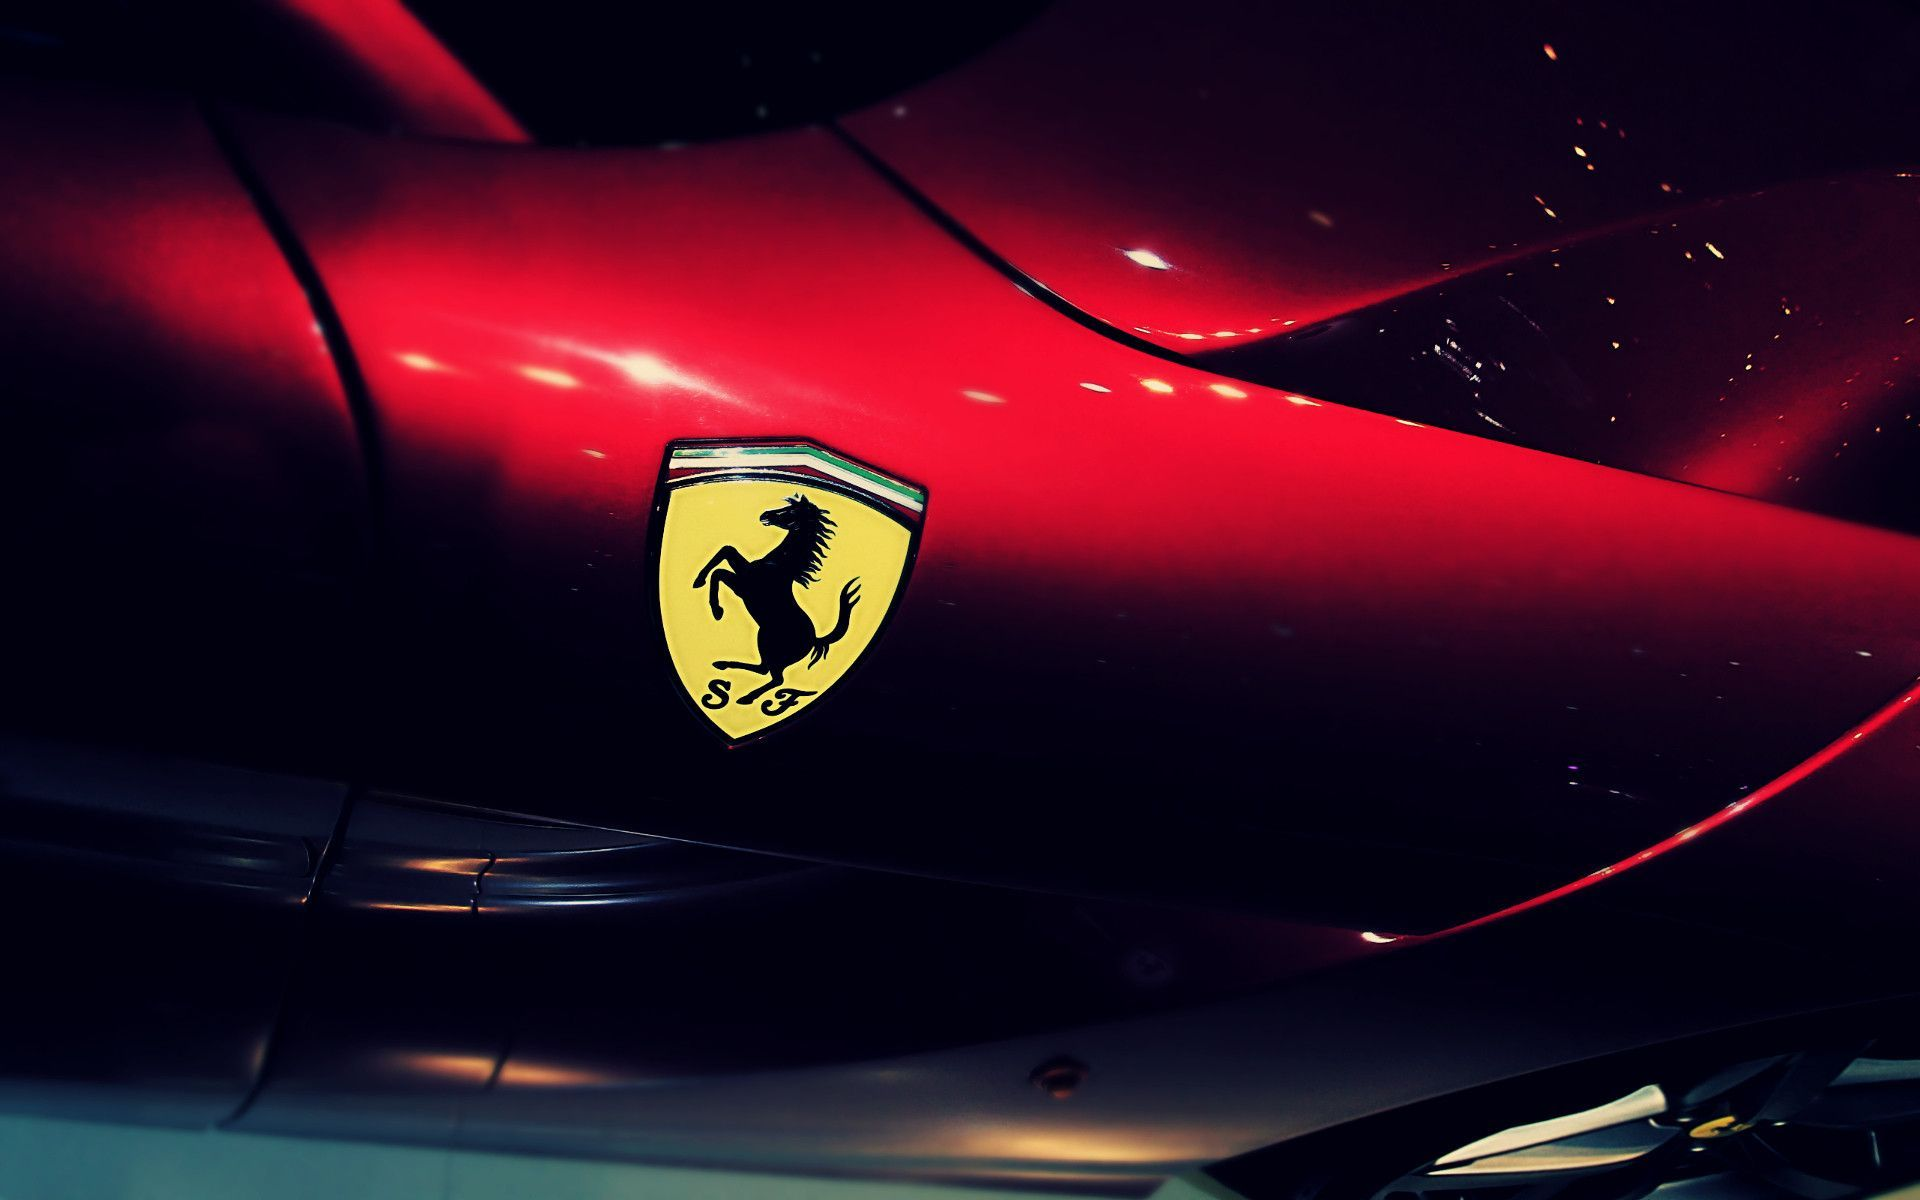 ferrari wallpapers full hd | ferrari | pinterest | ferrari